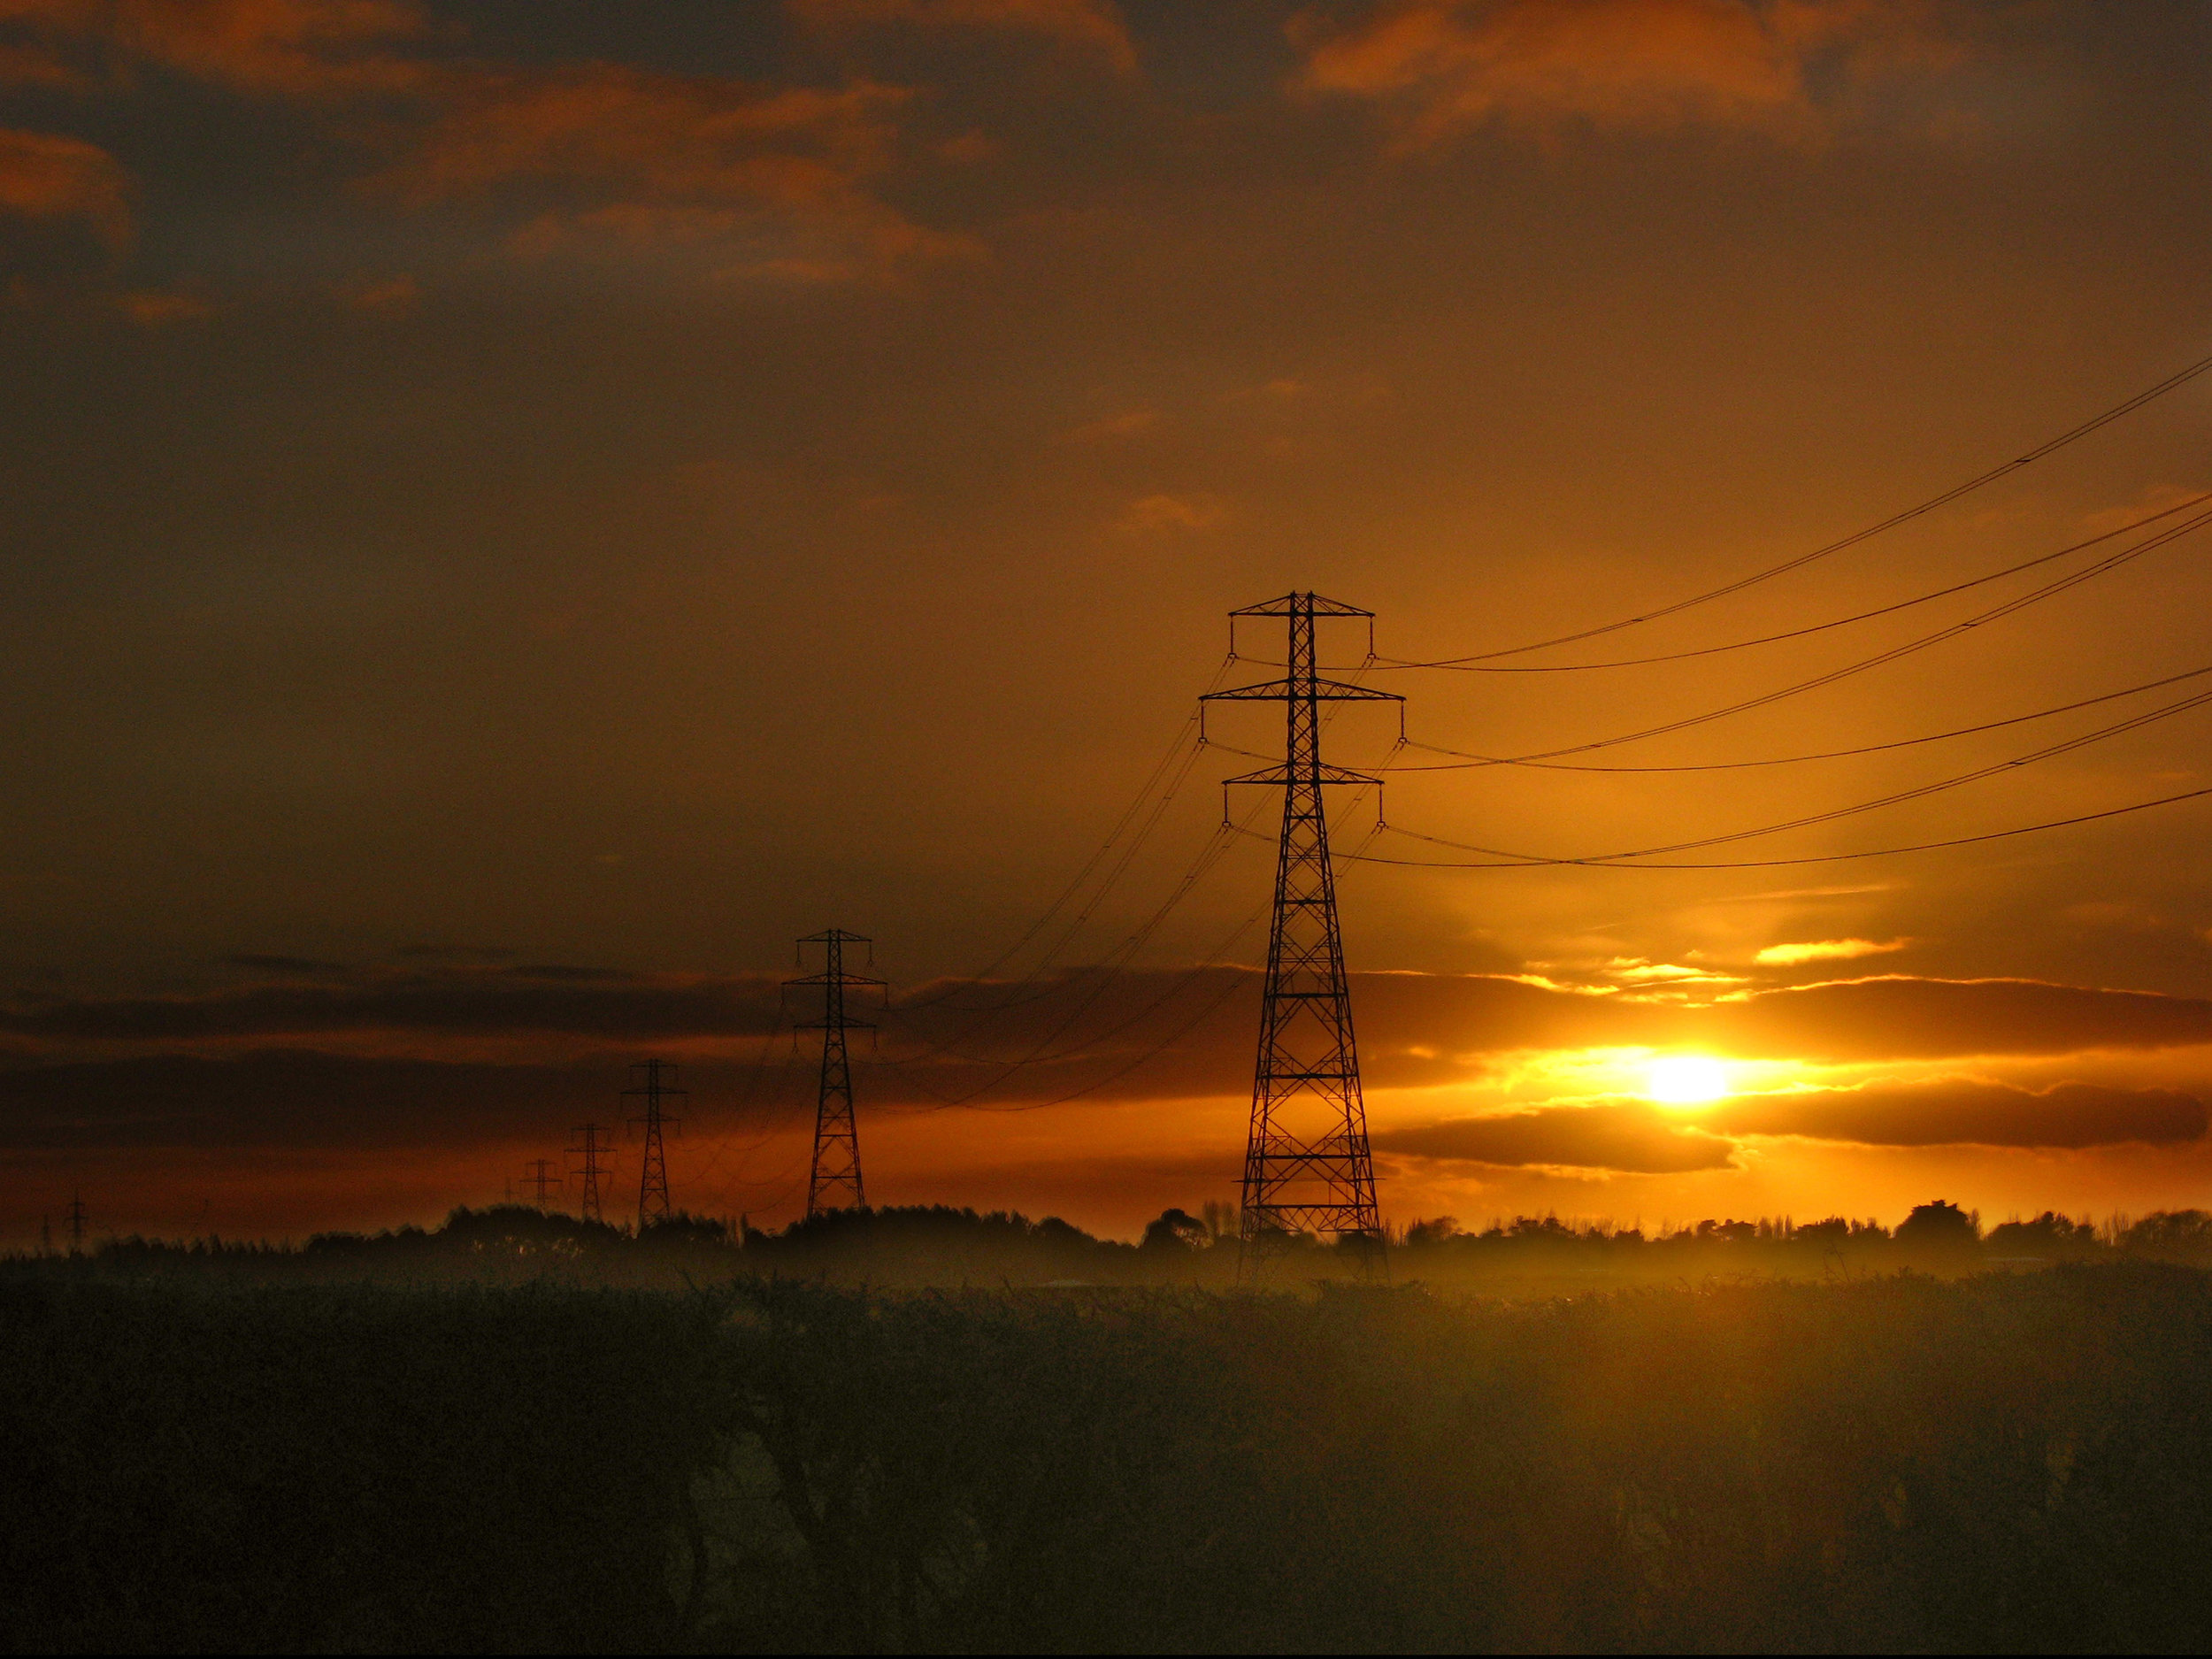 Sun and Power Lines